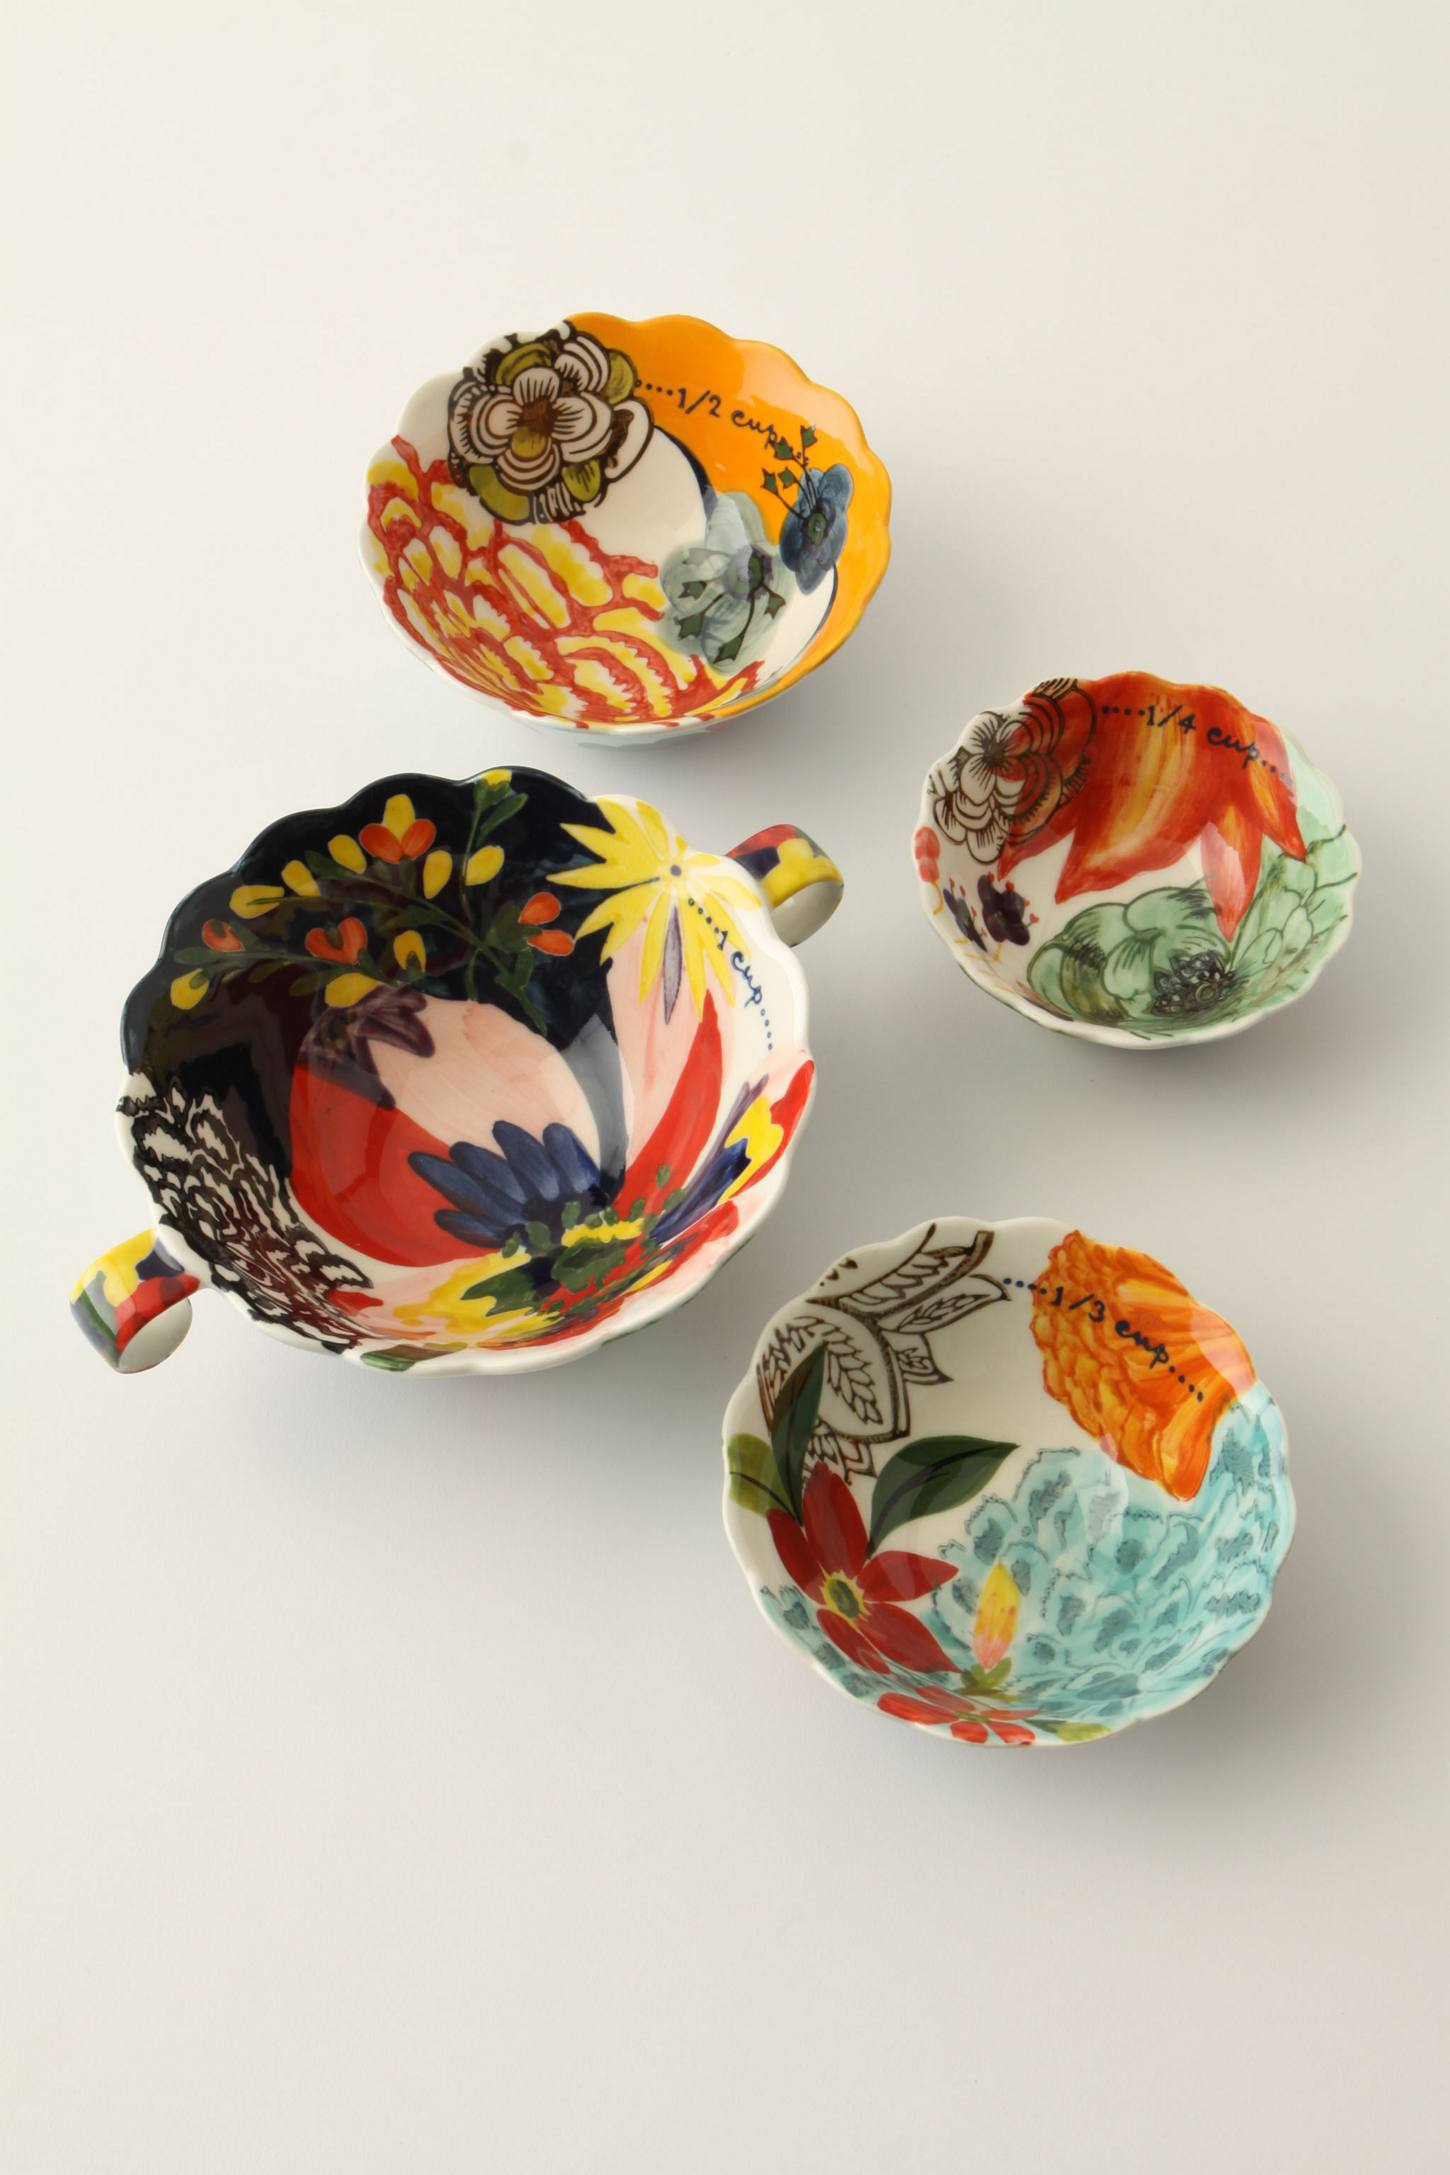 Floral patterned measuring cups from Anthropologie